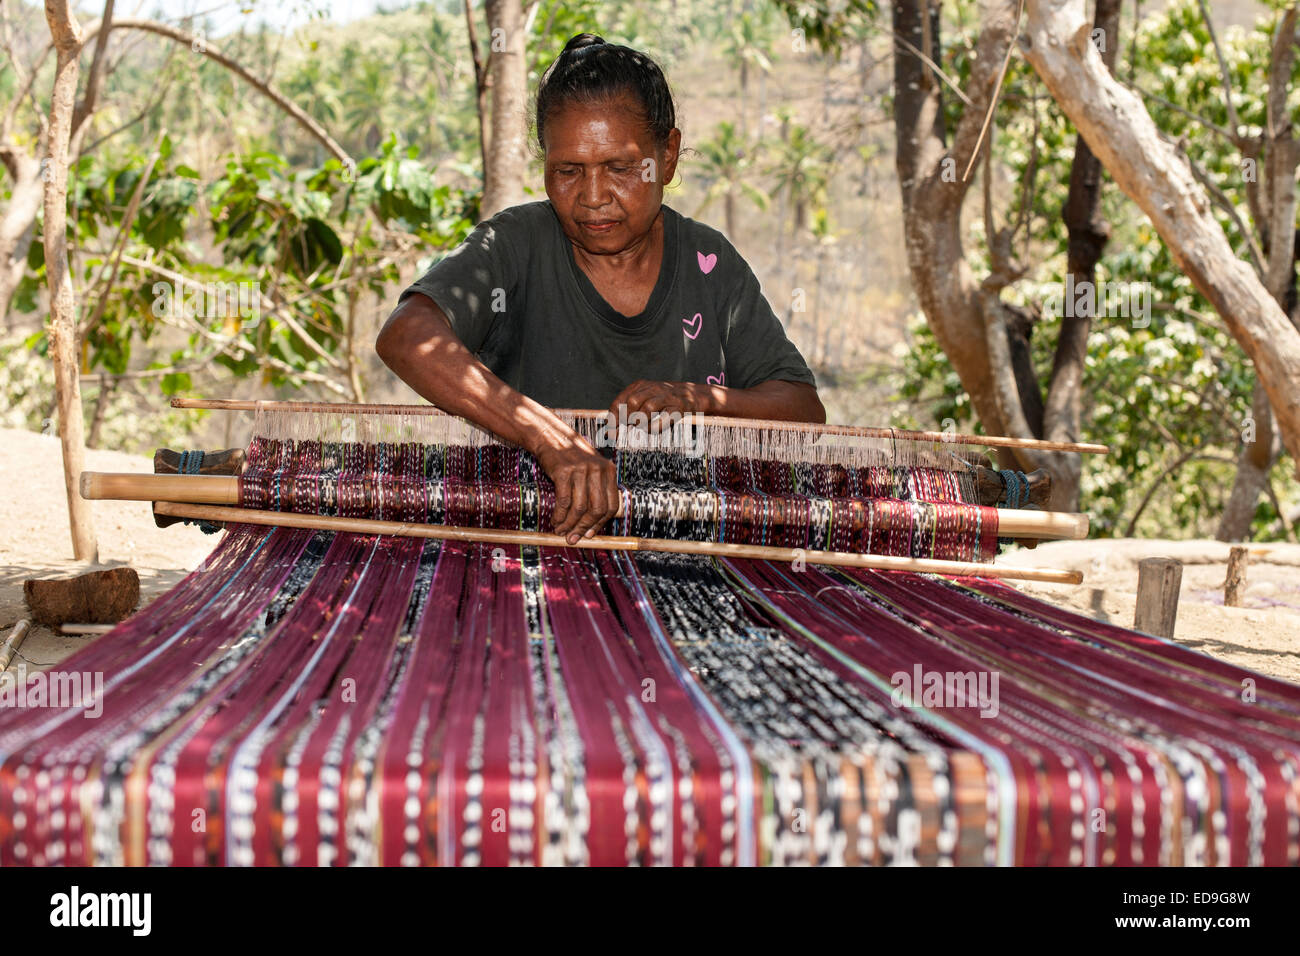 Indonesian woman weaving traditional sarongs on the roadside on the island of Flores in Indonesia. - Stock Image